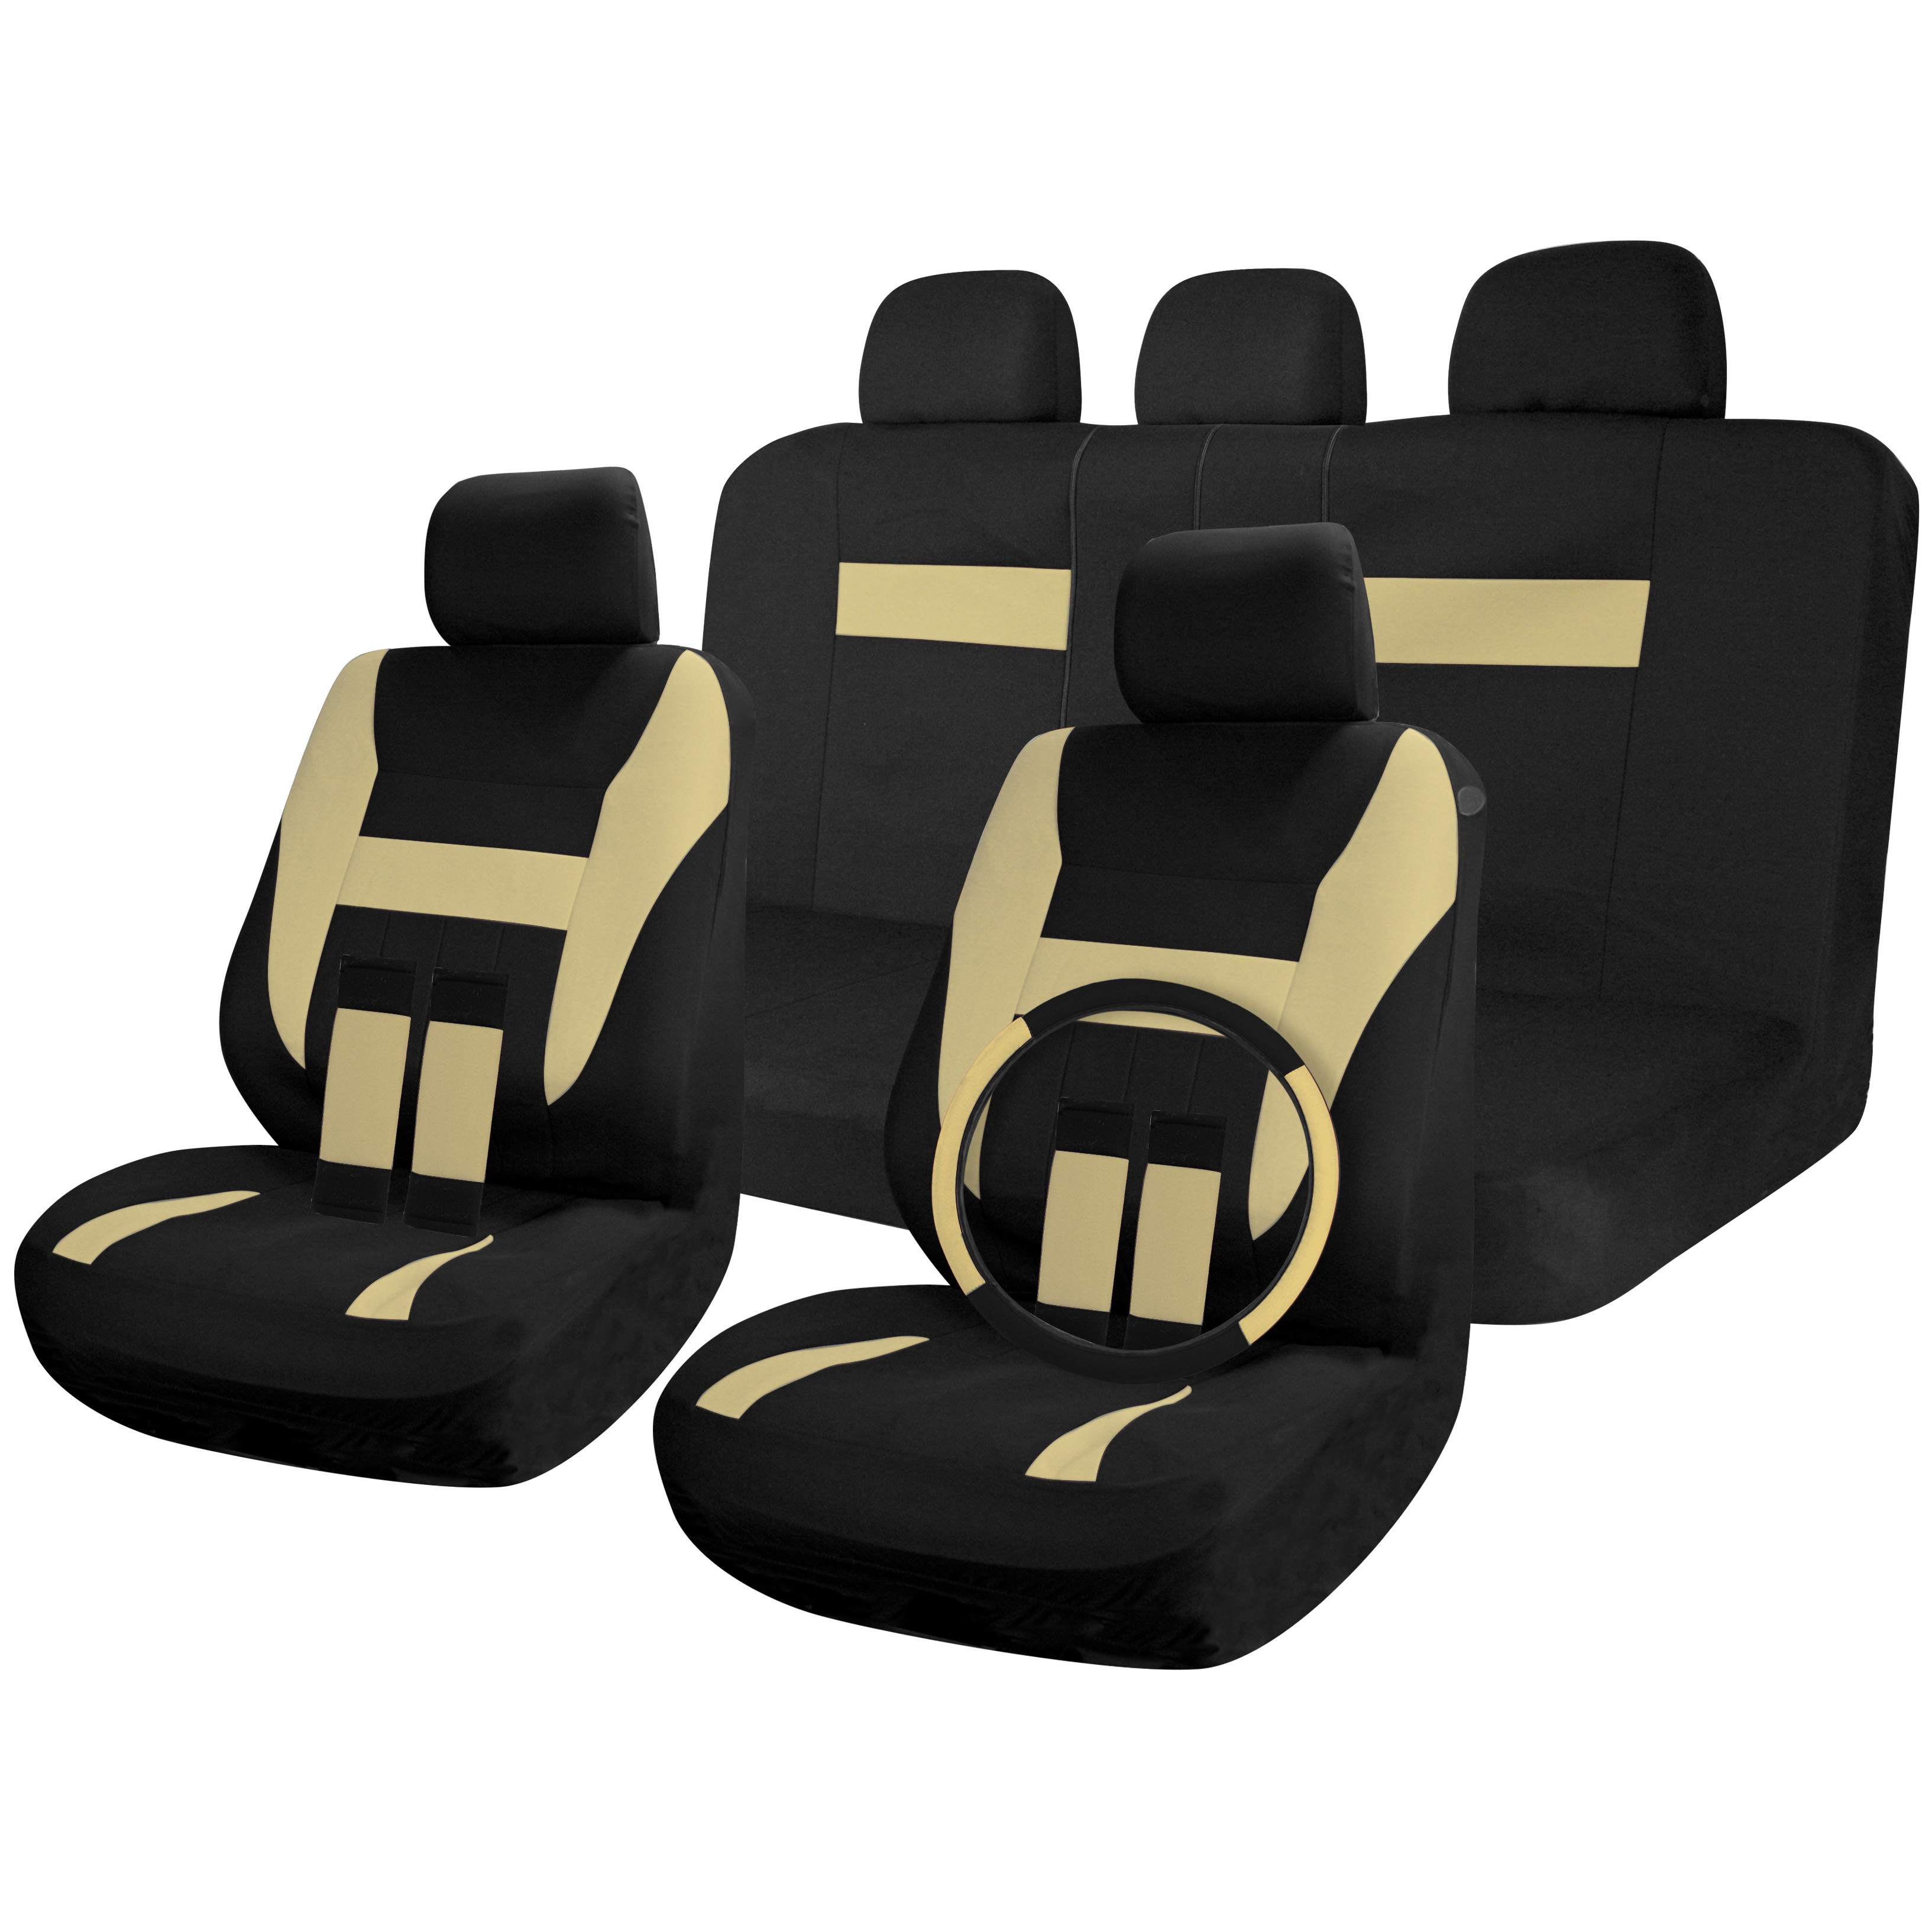 car seat covers black beige tan 17pc full set for seats steering wheel cover ebay. Black Bedroom Furniture Sets. Home Design Ideas